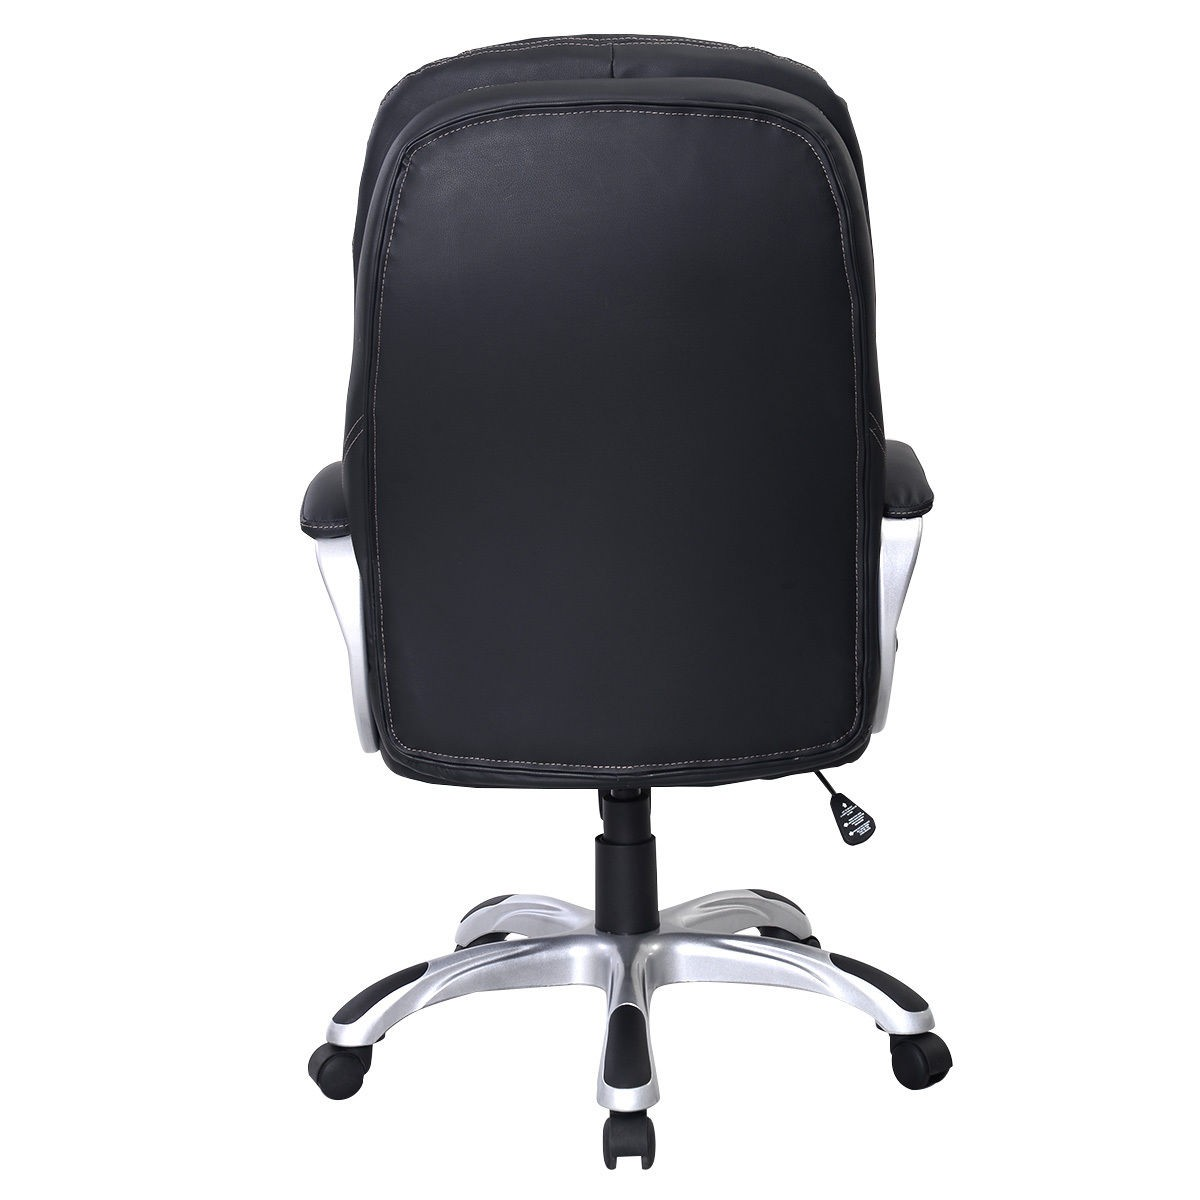 Black High Back PU Leather Office Chair Executive Ergonomic Computer Desk Task